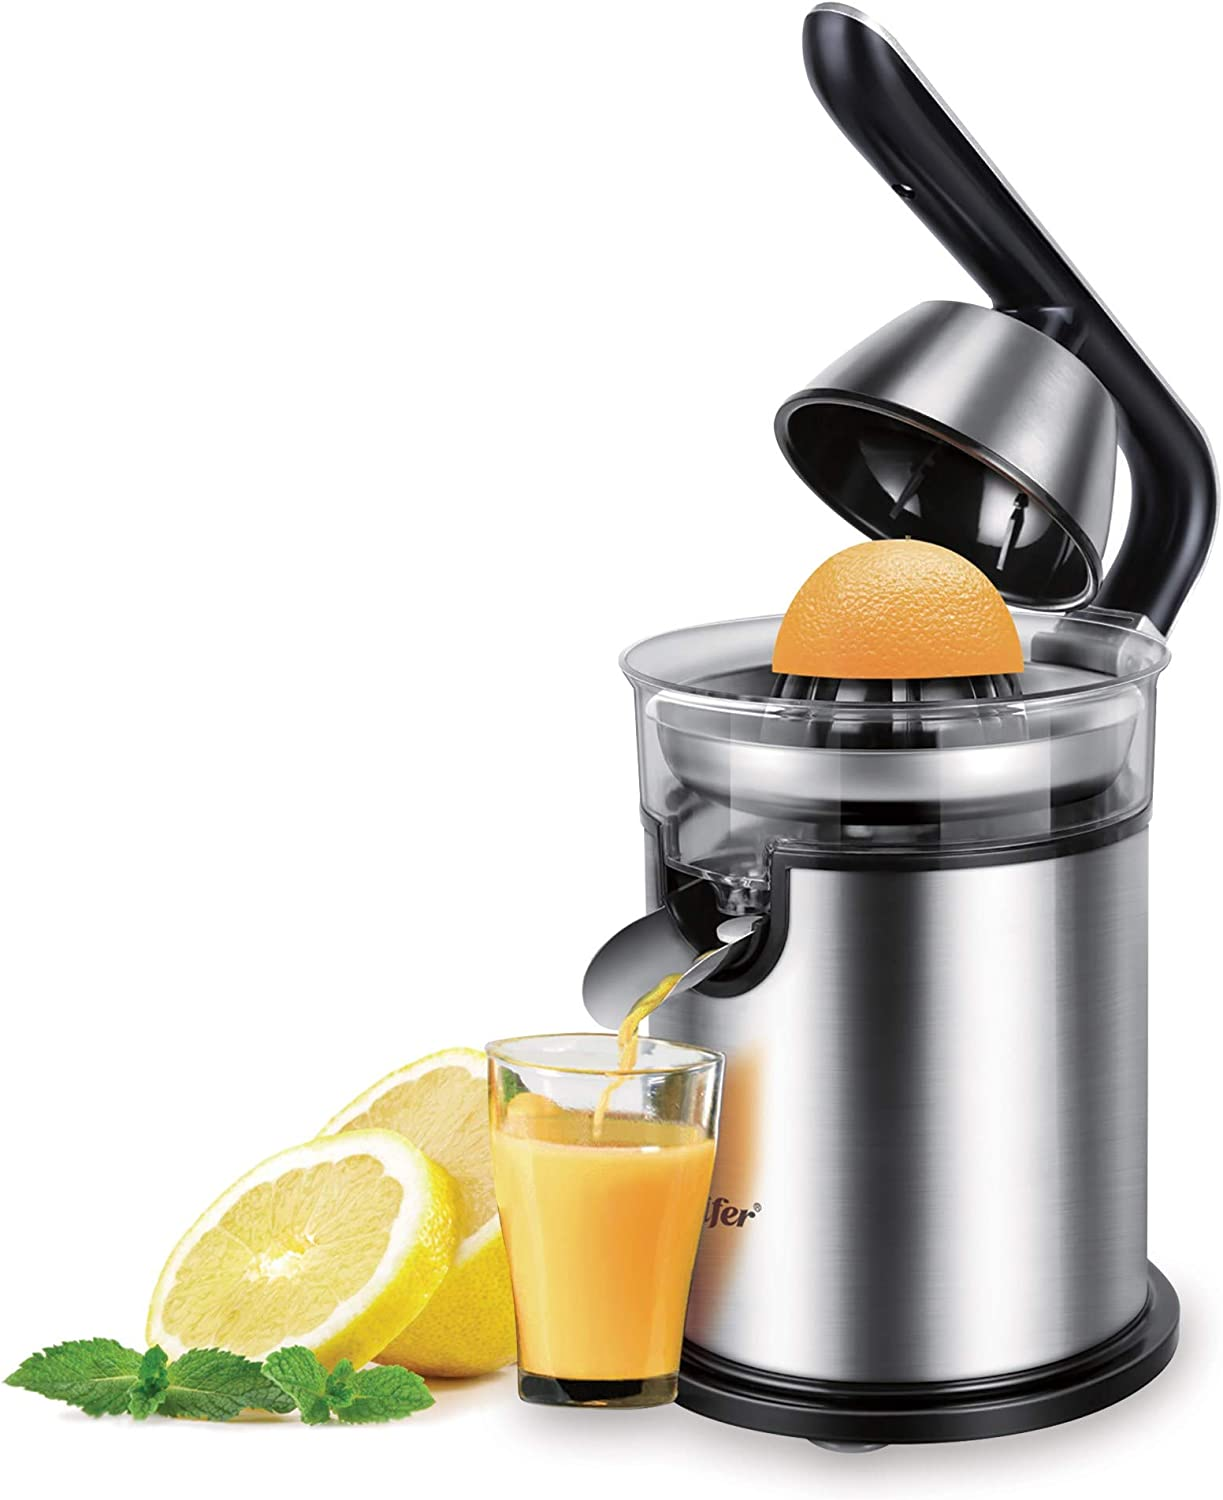 NNDQ Stainless Steel 300 Watts Electric Orange Juicer Squeezer Easy Use Hands-Free Electric Citrus Juicer Ultra Quiet Motor and Anti-Drip Spout